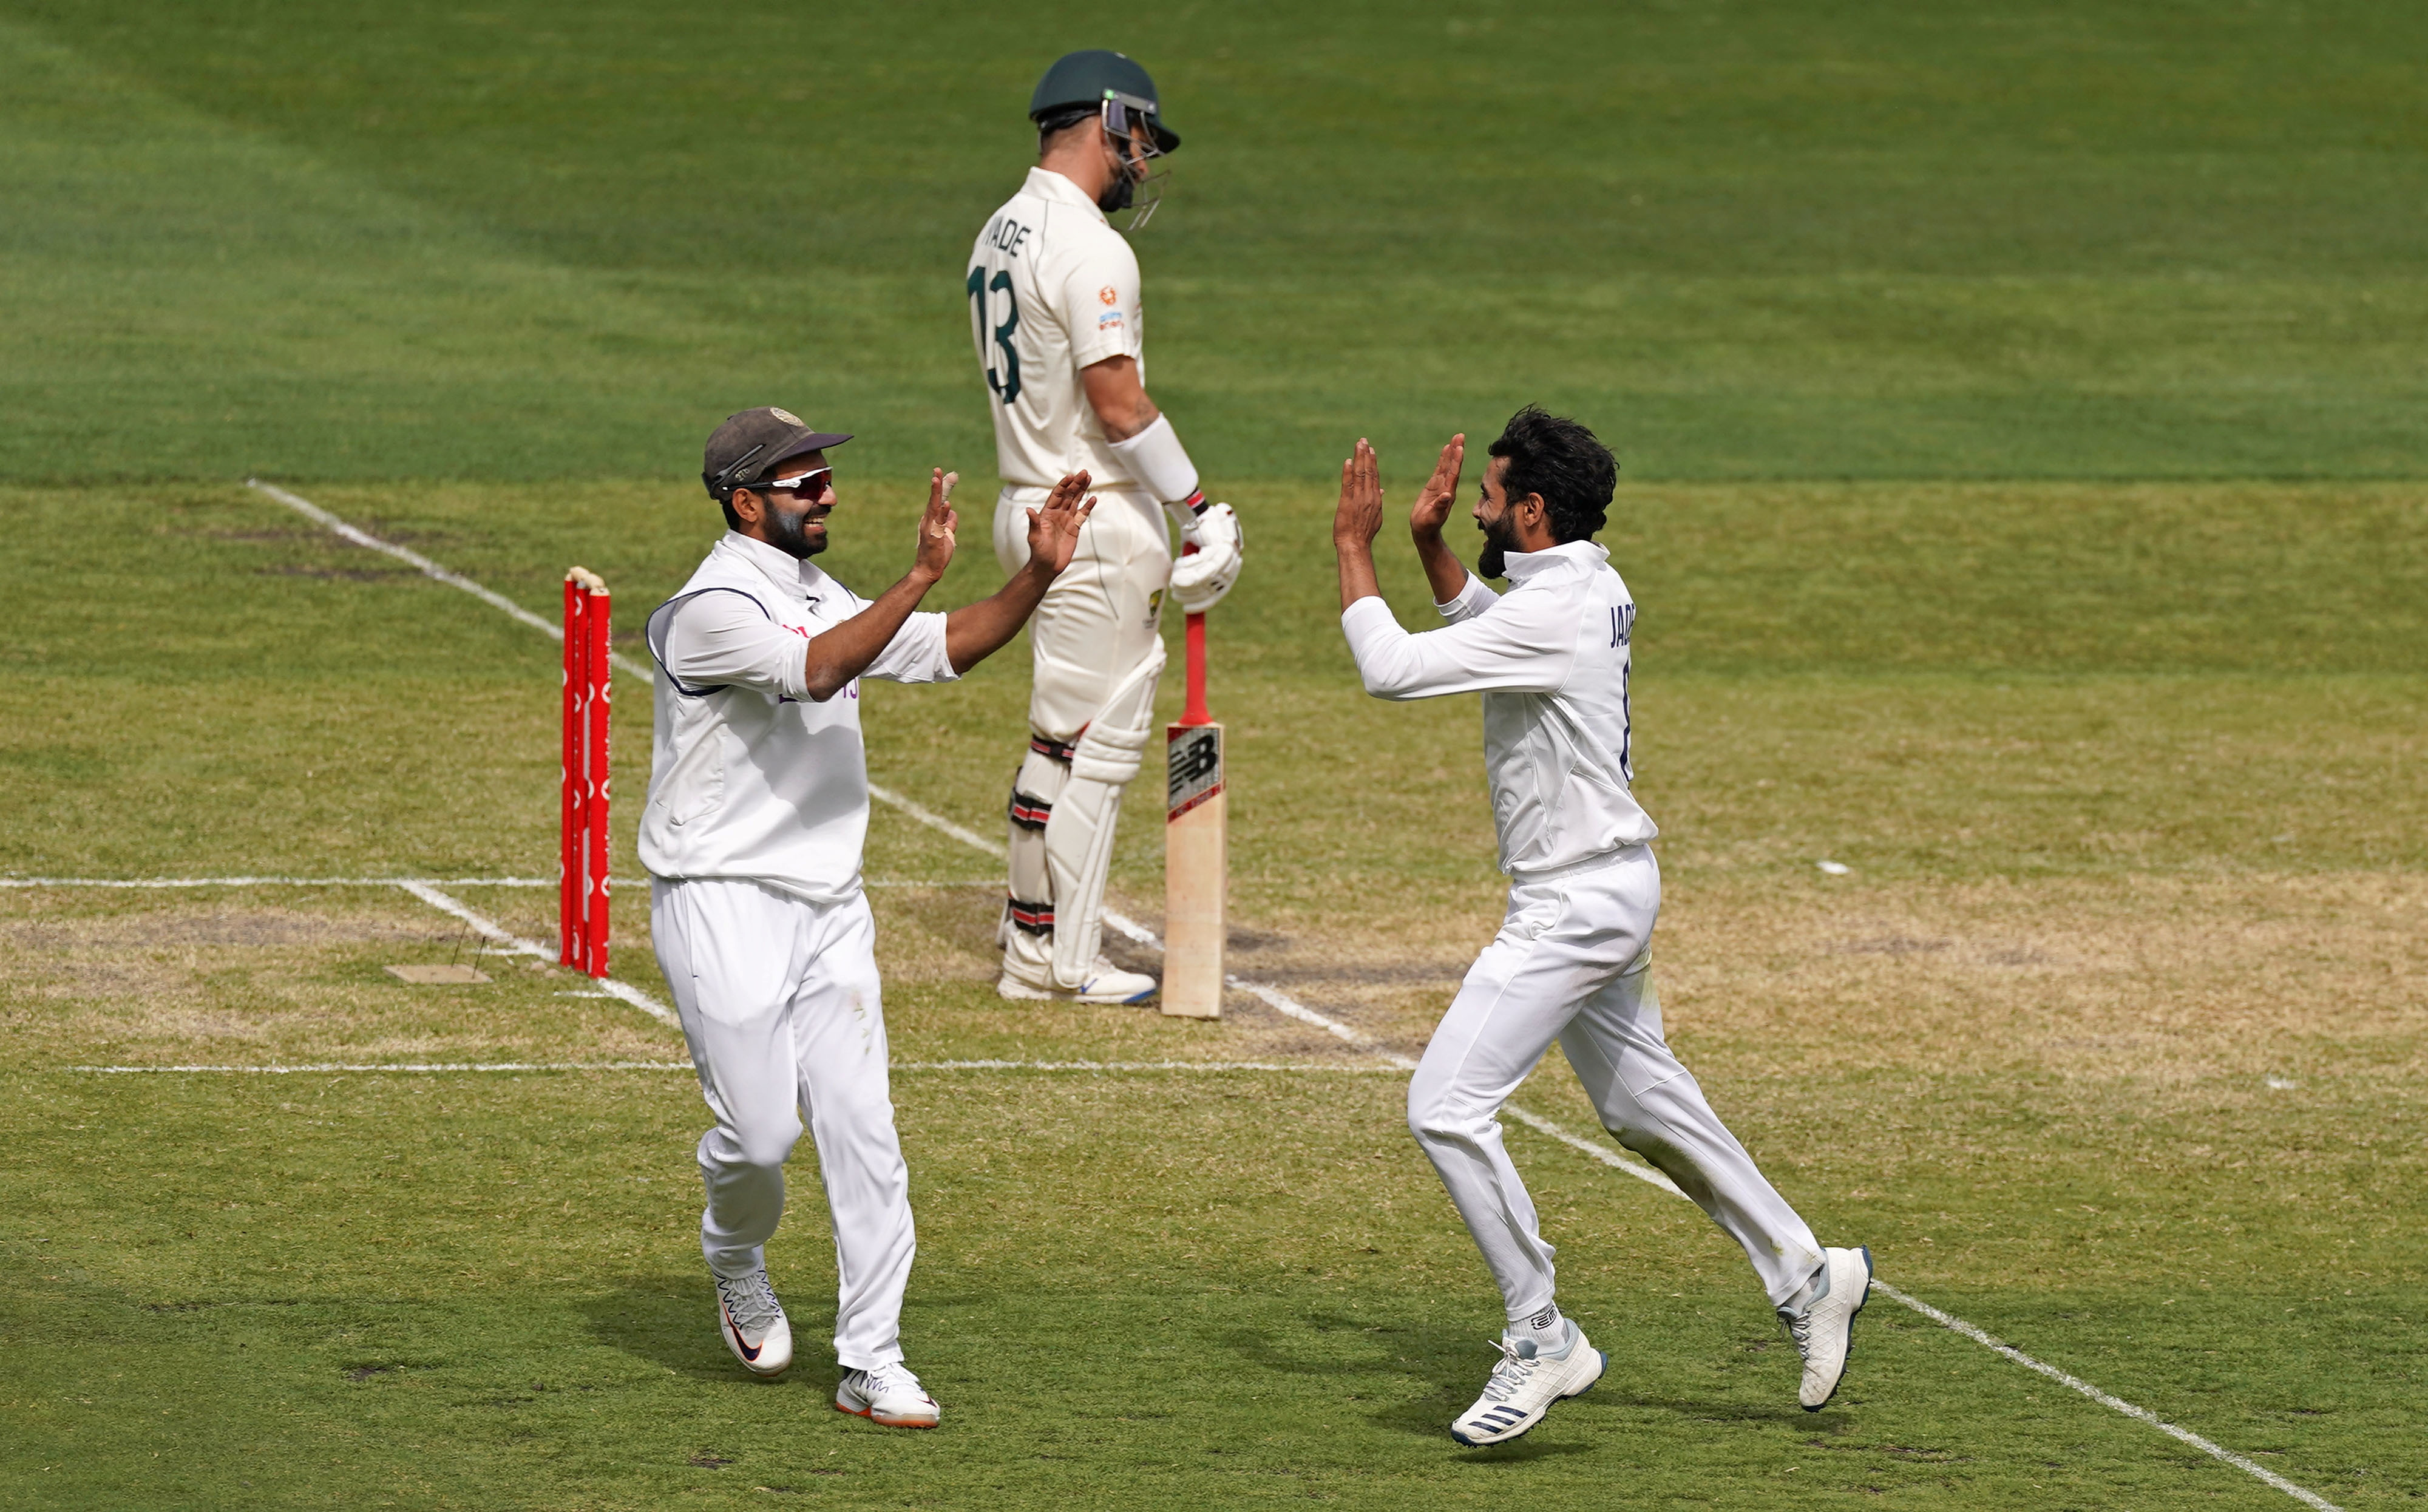 India's Ravindra Jadeja celebrates after taking the wicket from Matthew Wade of Australia with Ajinkya Rahane during day three of the second test match between Australia and India at The MCG, Melbourne, Australia, December 28, 2020. Photo: Reuters